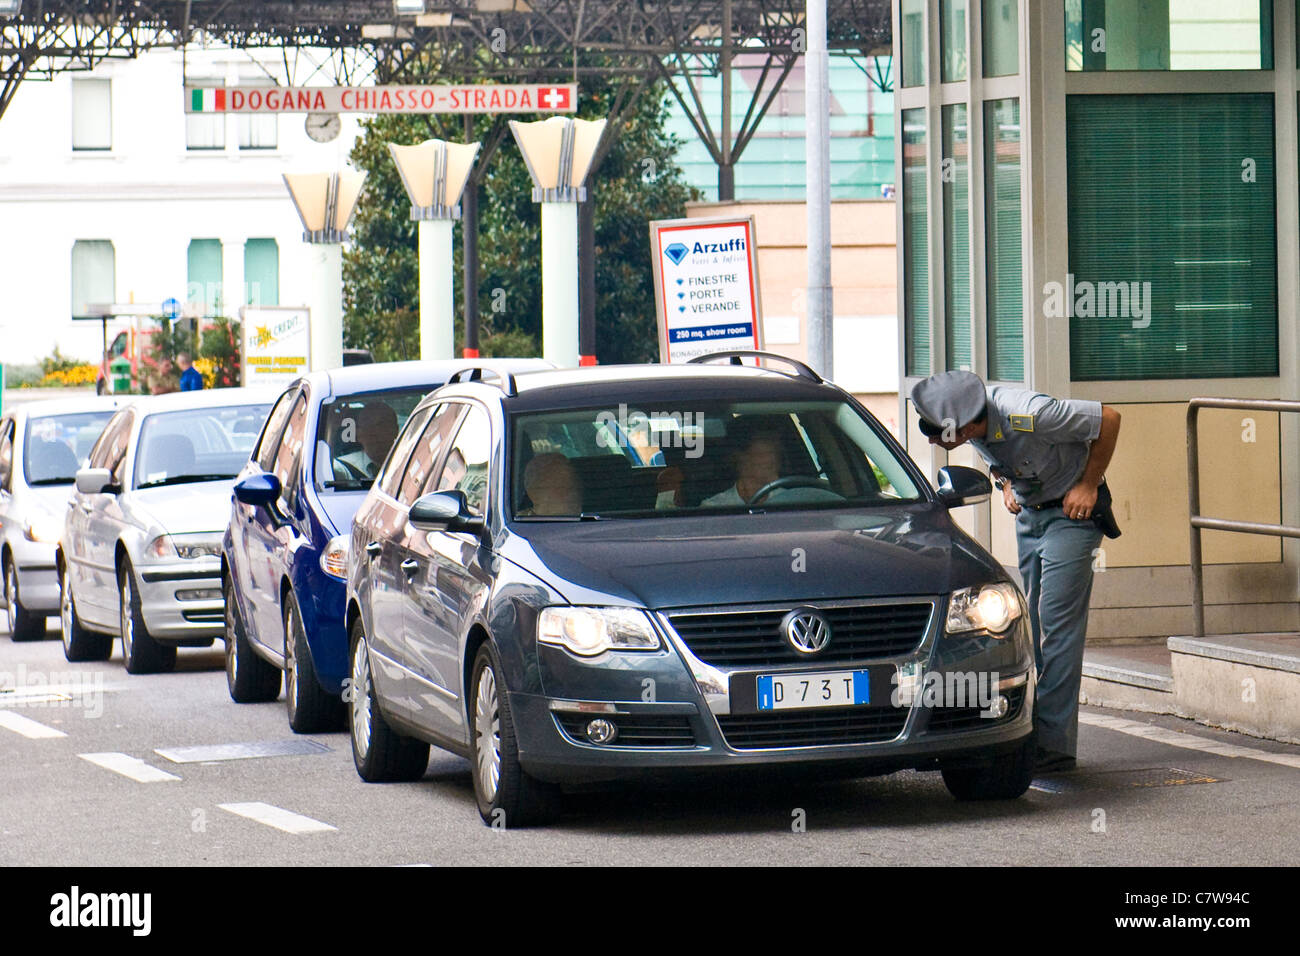 Lombardy, Italy and Switzerland customs border at Chiasso - Stock Image